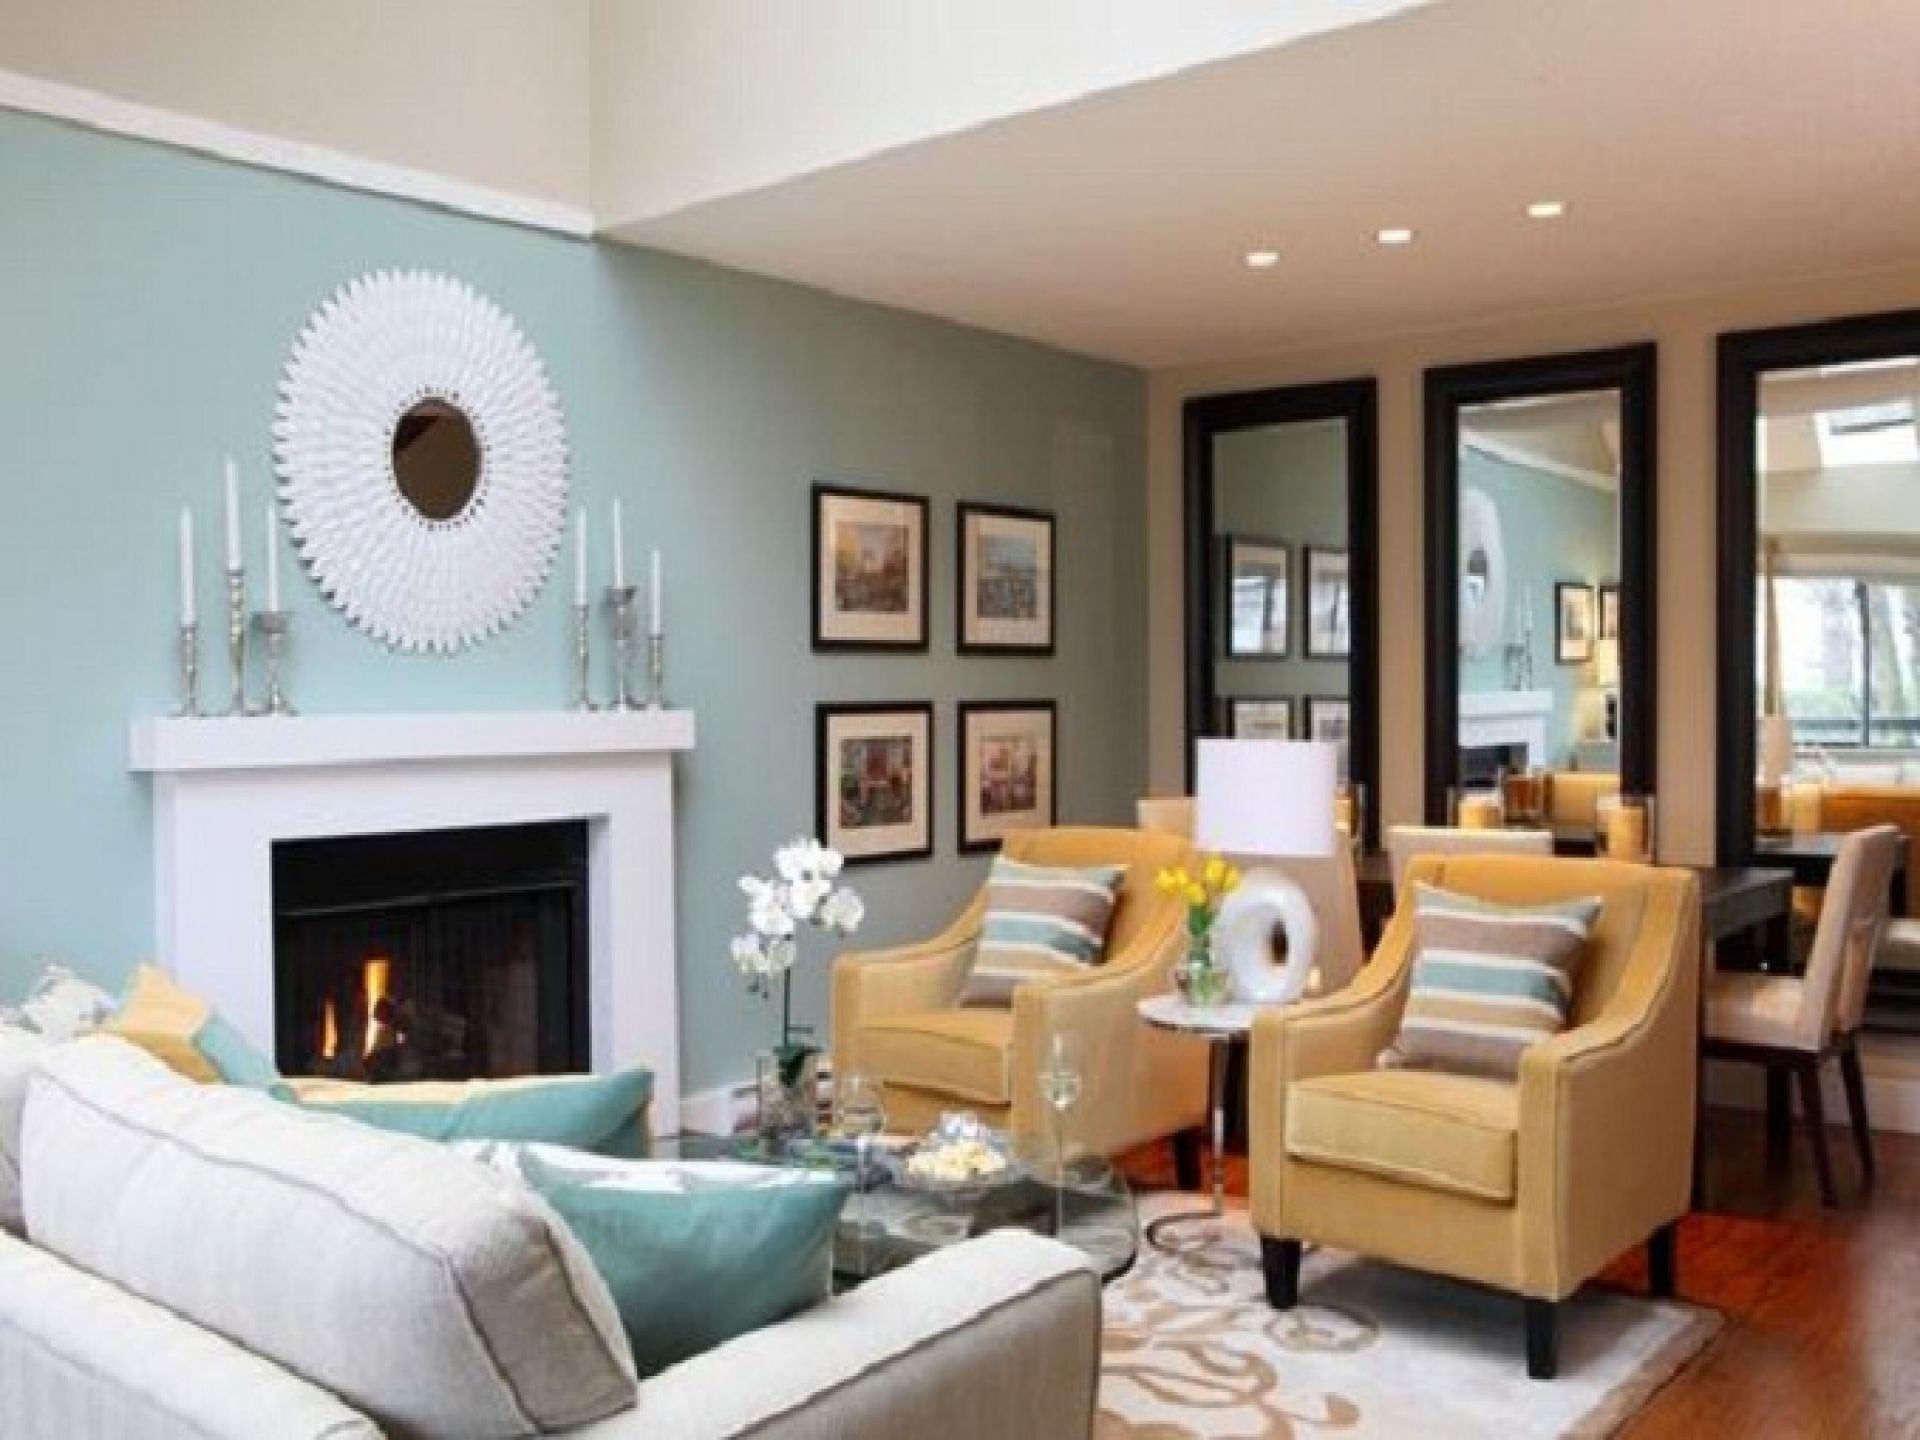 Sophisticated Living Room Color Schemes Ideas Creative White Modern Fireplace Mantle And Midcentury Couch